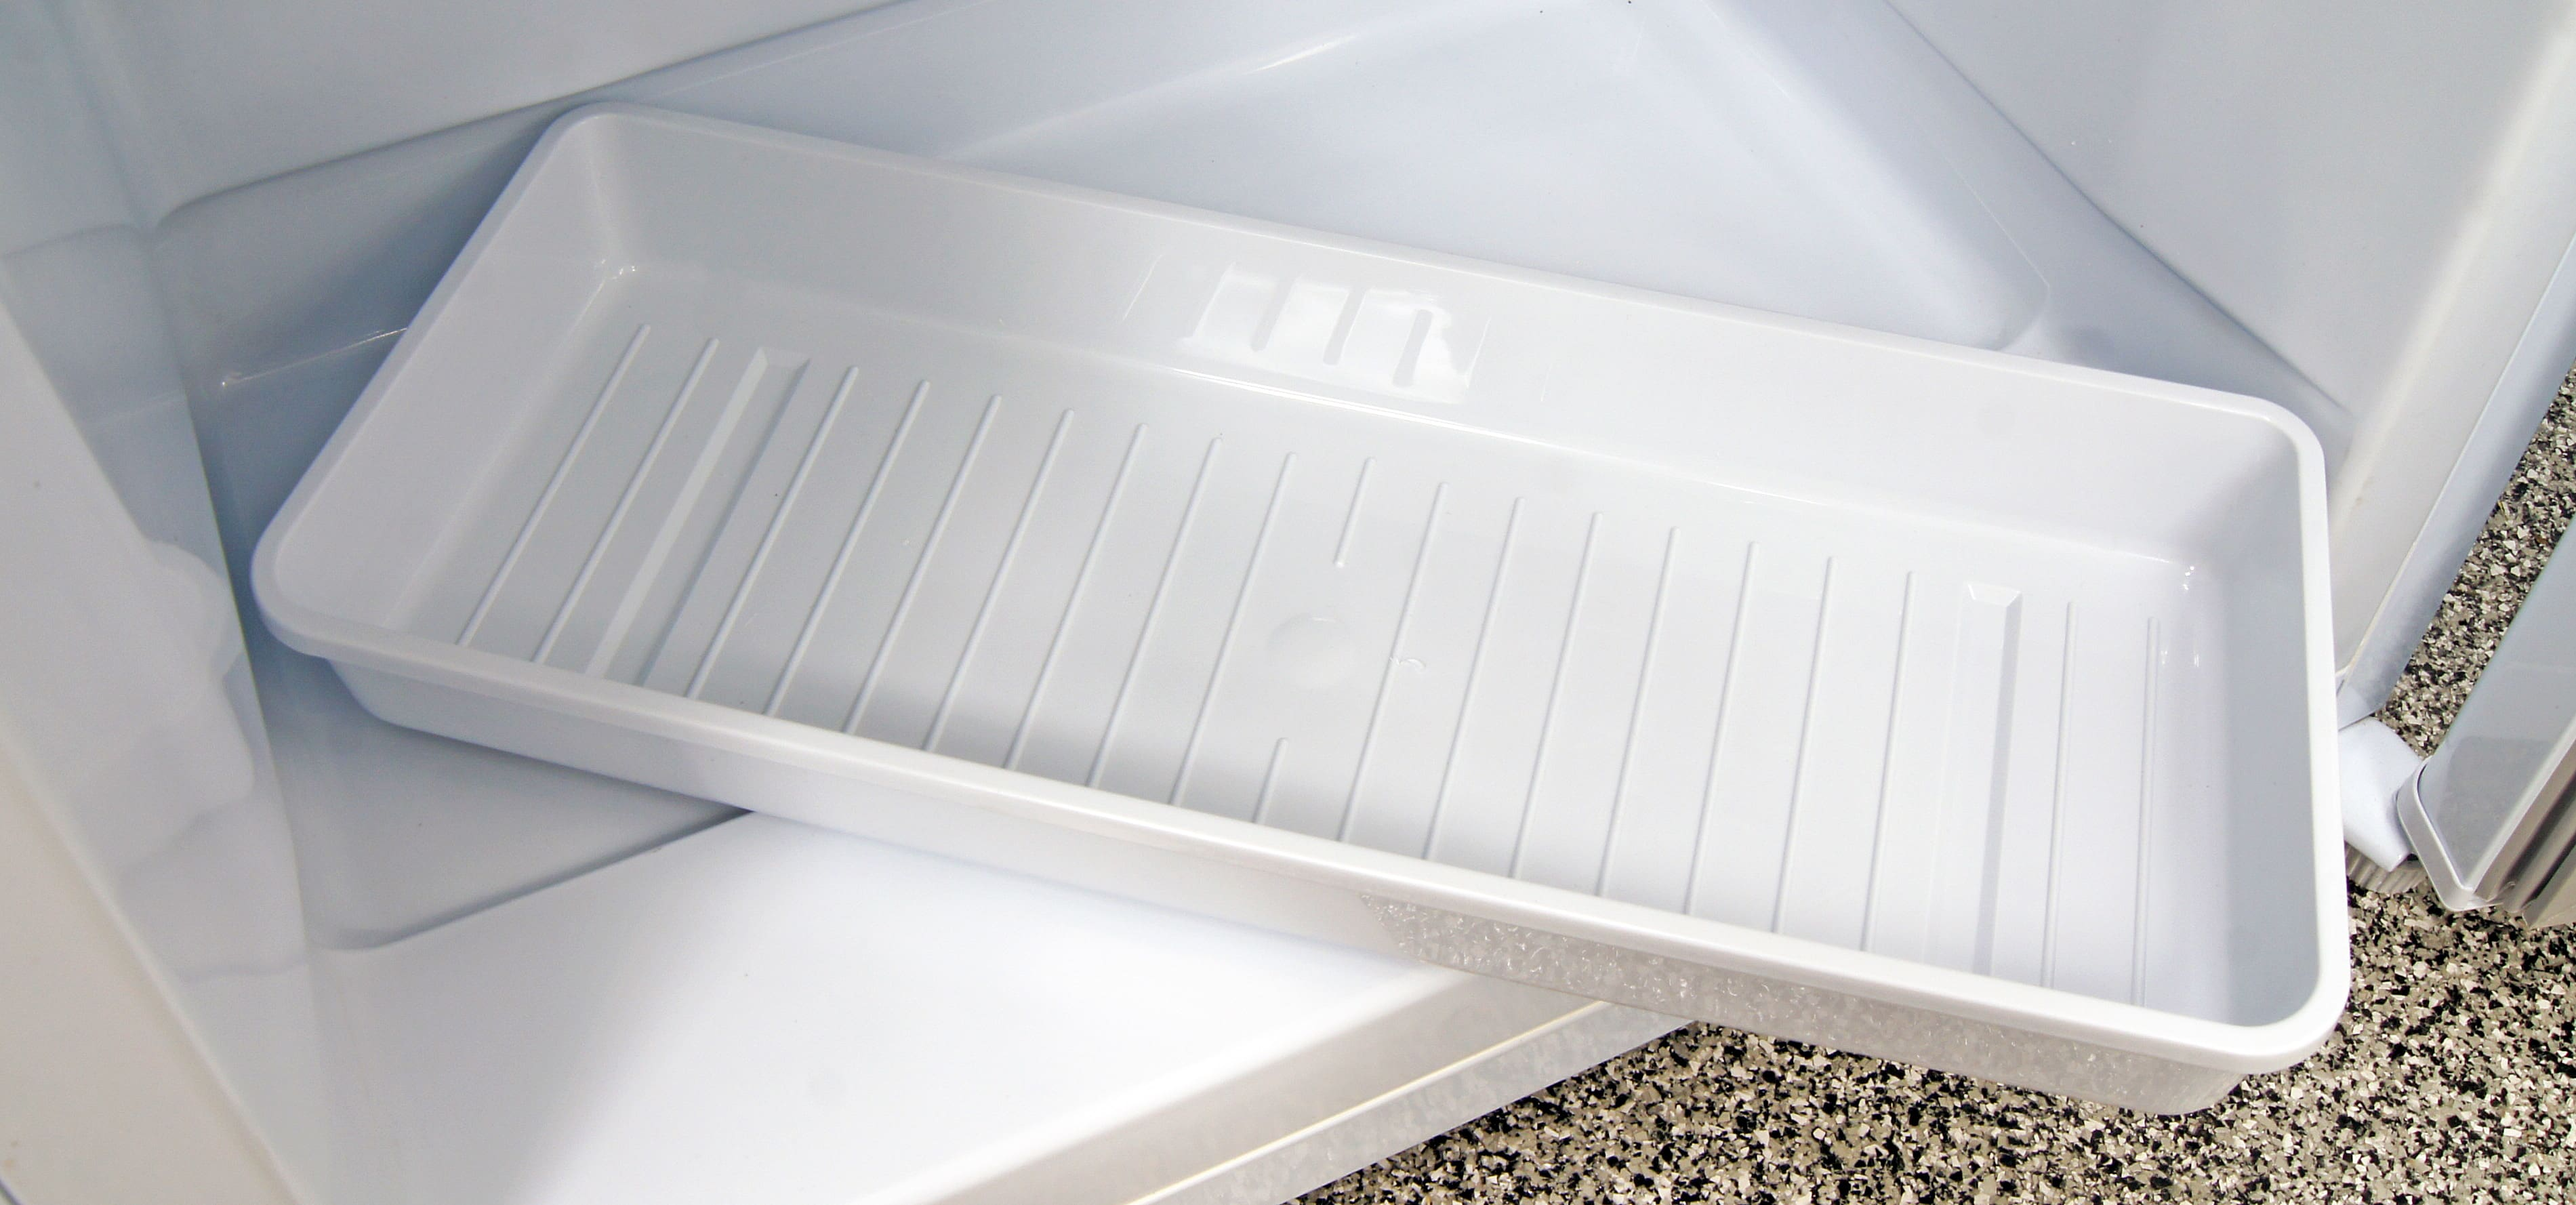 The removable tray is useful both for storing food and catching water when you're defrosting the interior of the Danby DUF408WE.